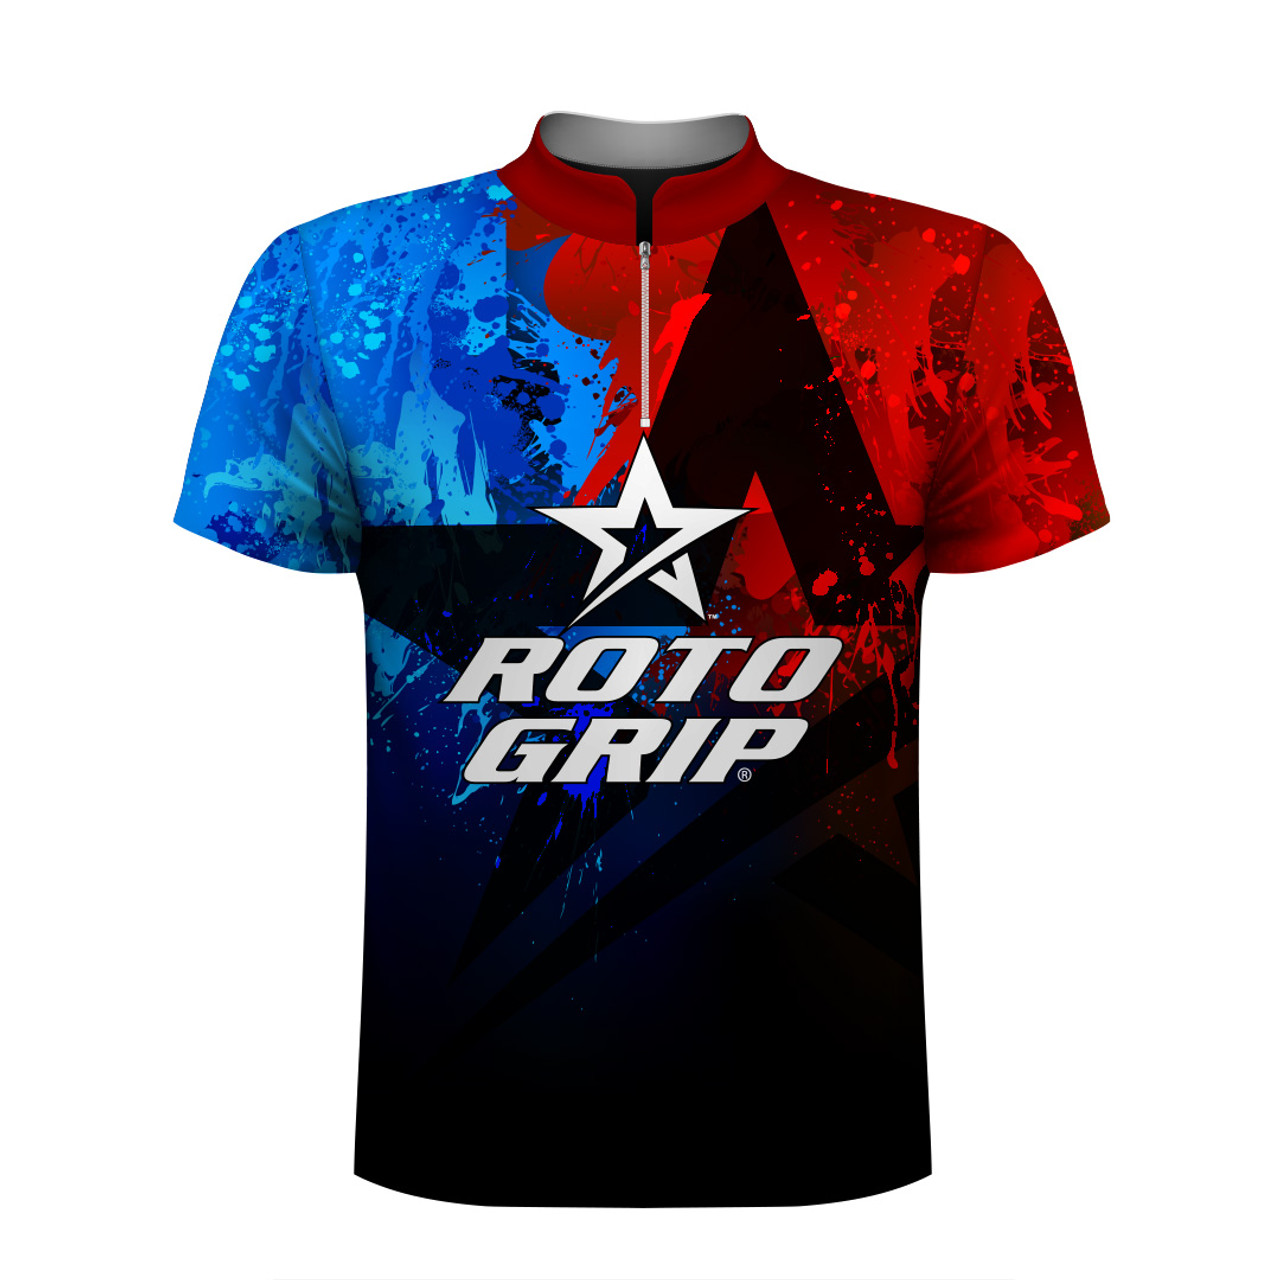 Roto  Fabulous Rotowear Classic With Roto  Good Roto With